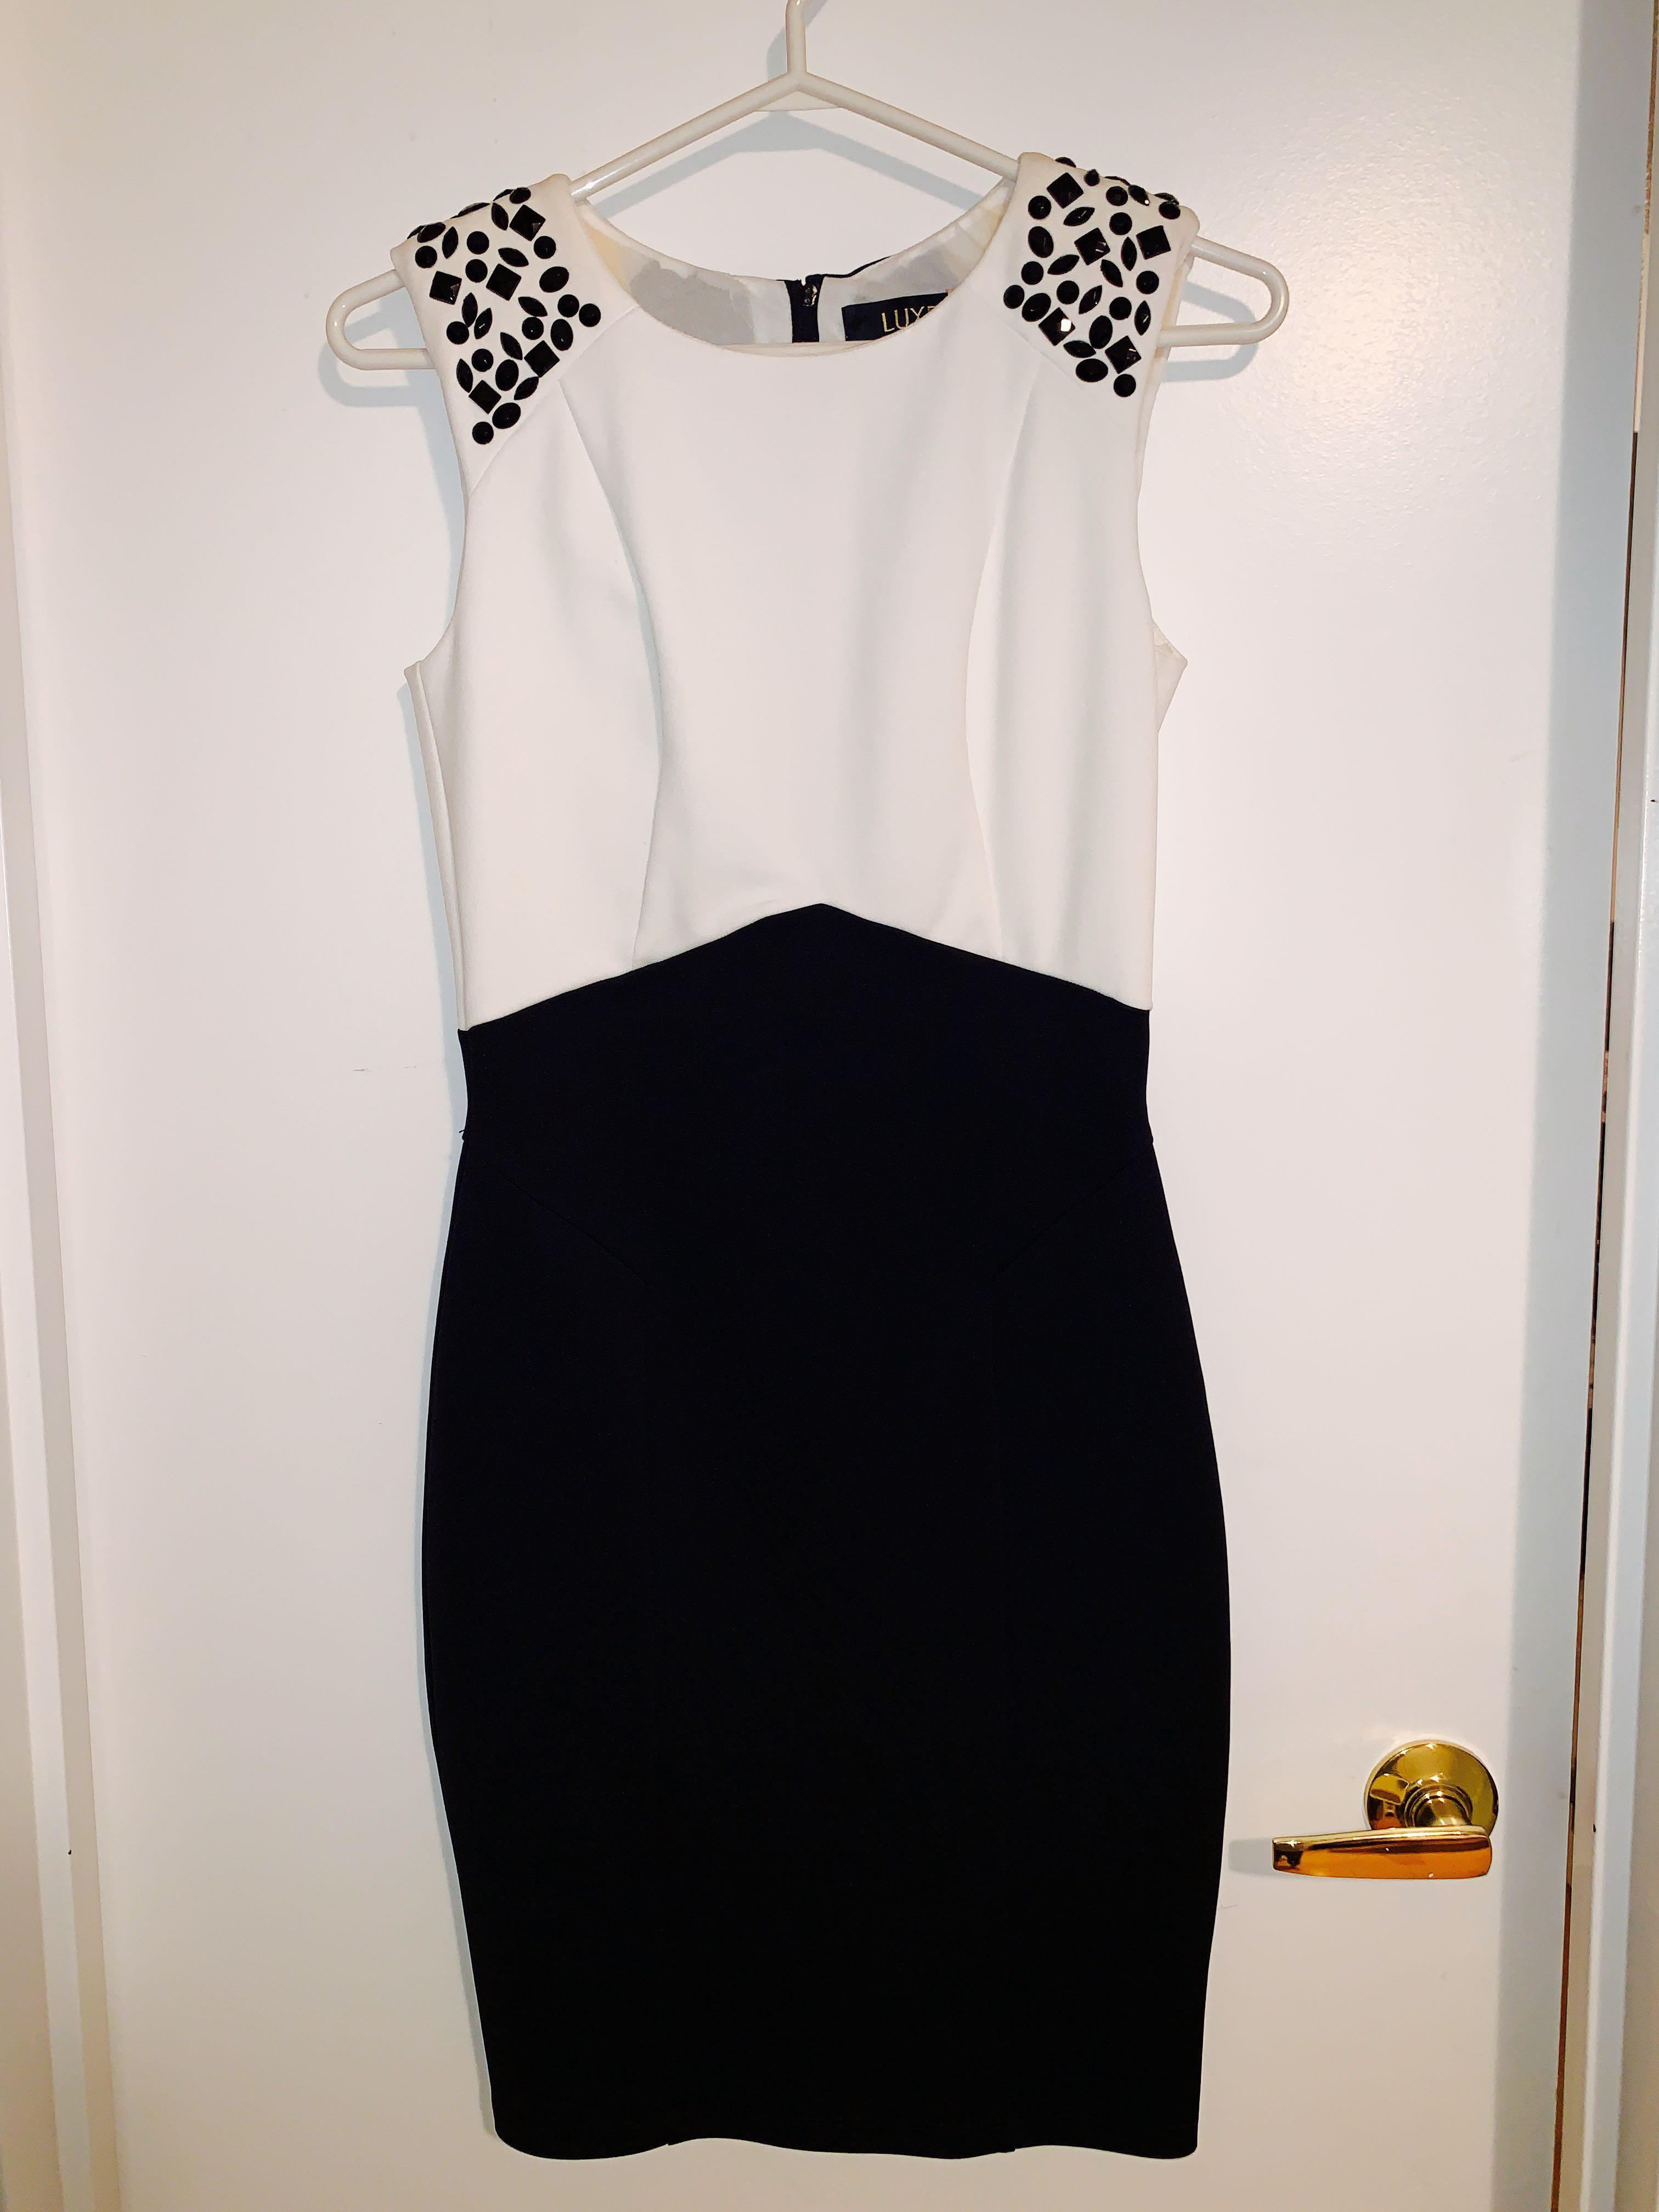 Formal / Event Dress - UK SIZE 8